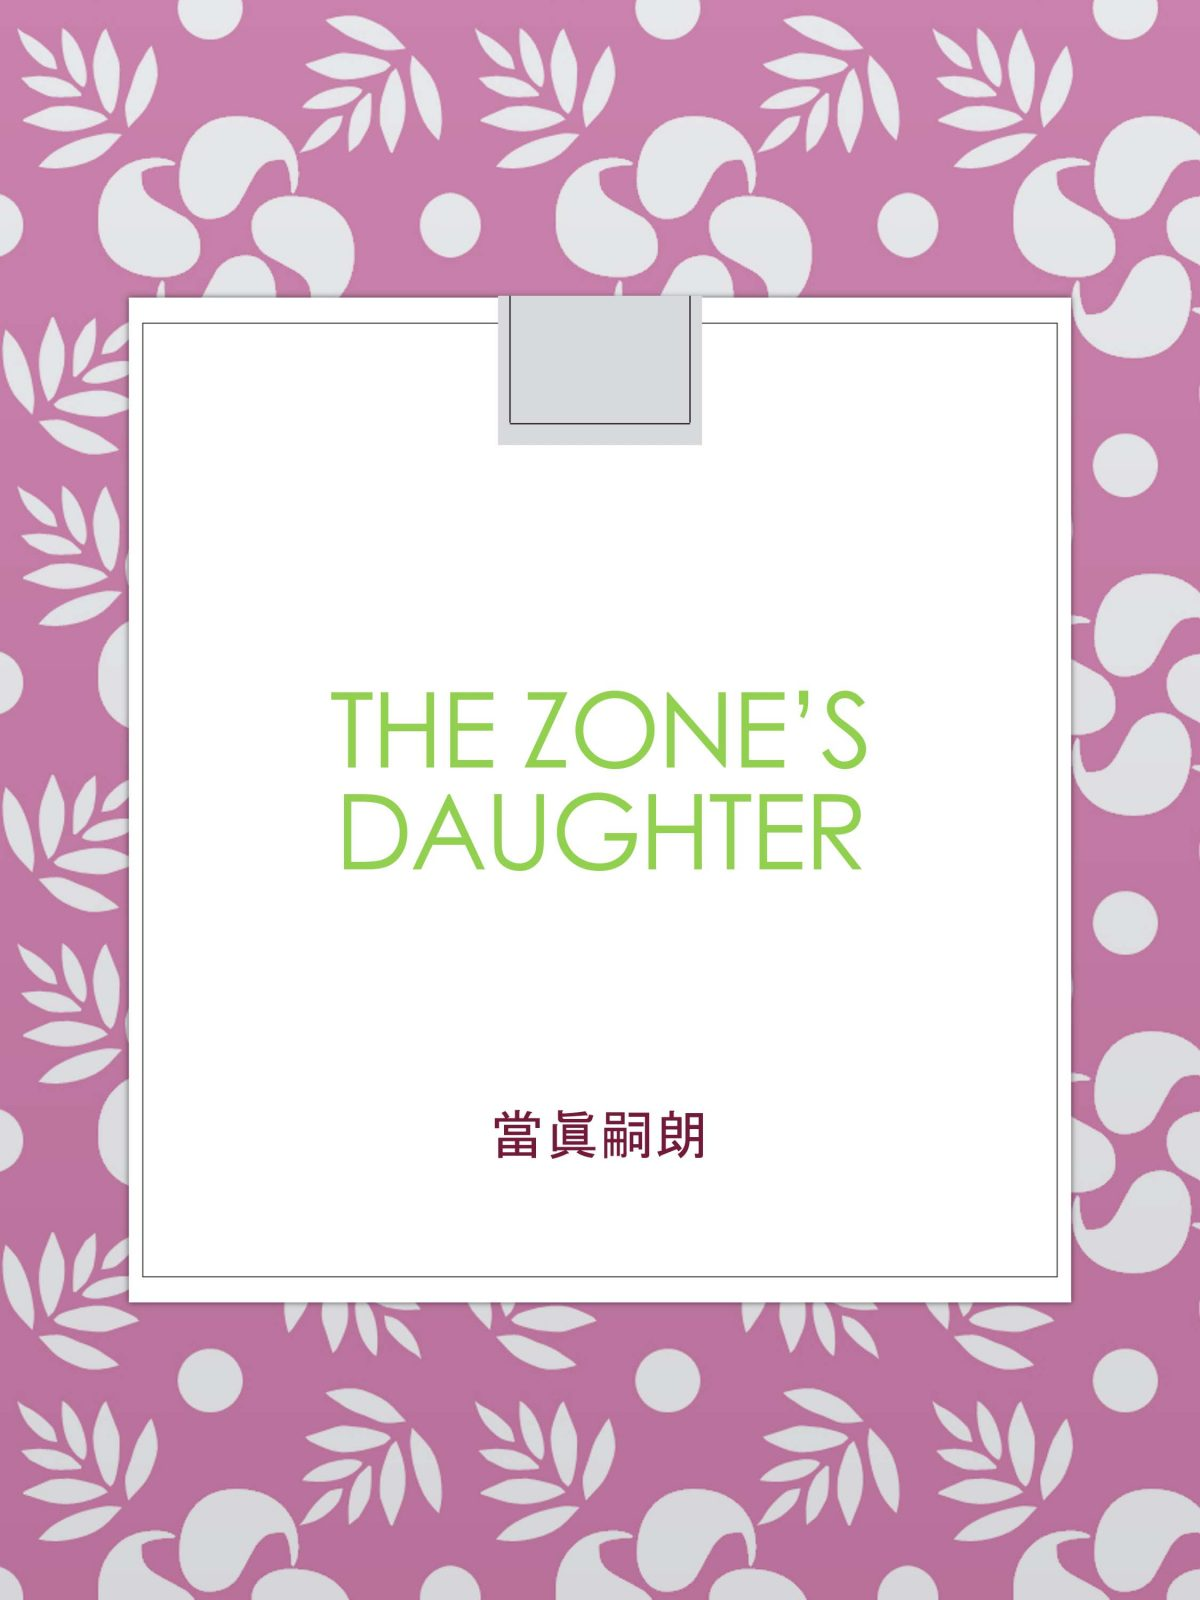 The Zone's daughter